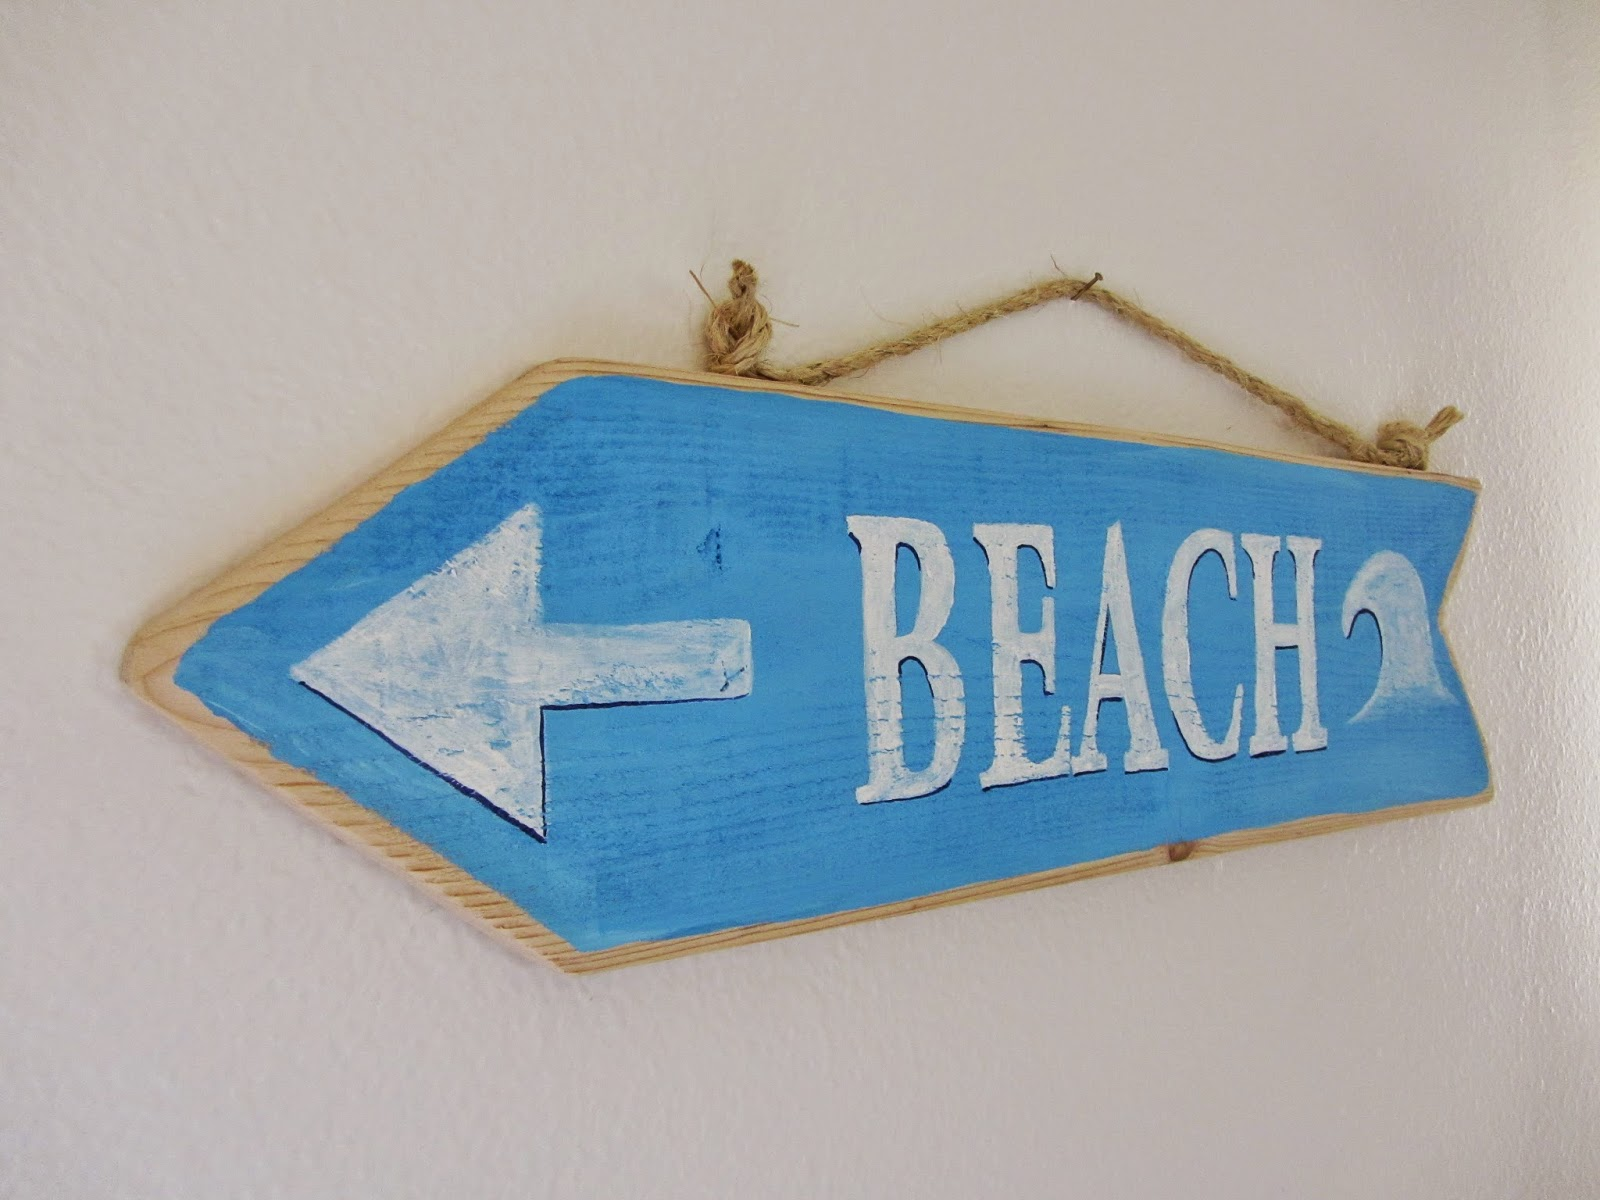 https://www.etsy.com/listing/226740895/beach-sign-custom-hand-painted-wave?ref=listing-shop-header-3